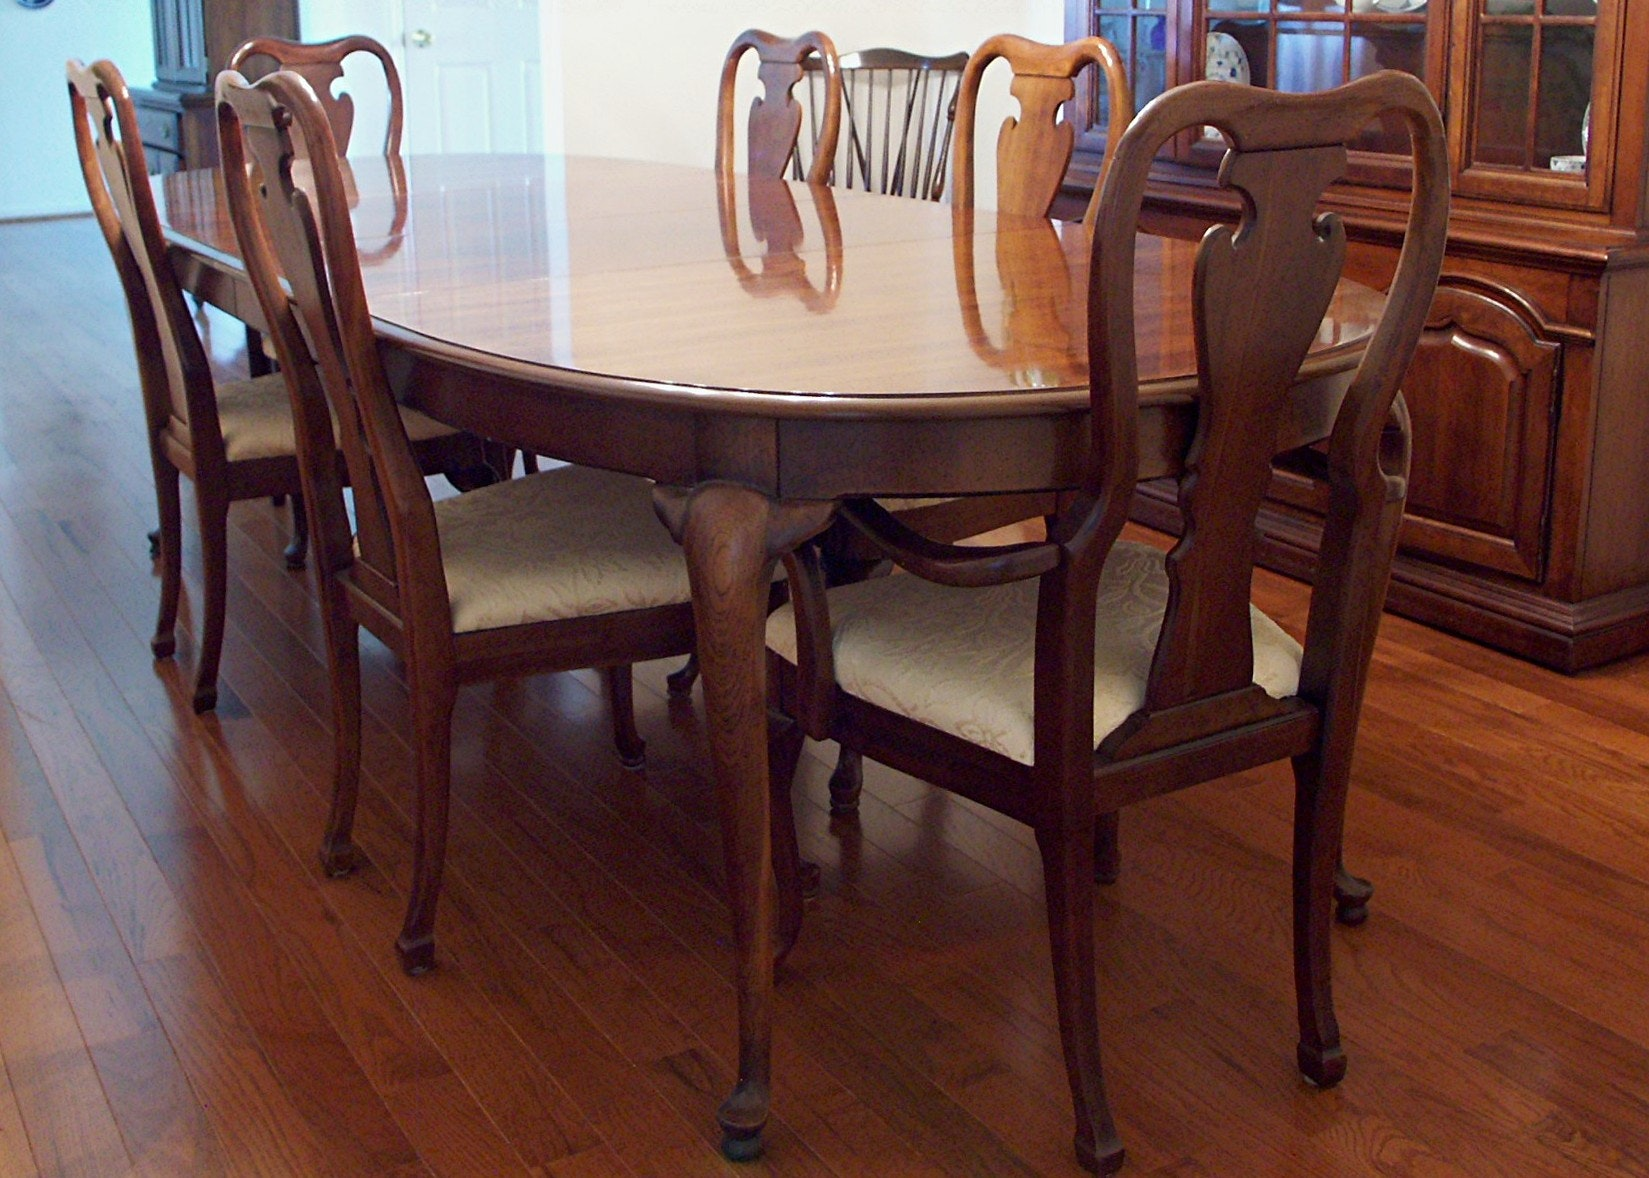 Thomasville Queen Anne Dining Table and Six Chairs EBTH : PICT0089JPGixlibrb 11 from www.ebth.com size 1400 x 1000 jpeg 281kB